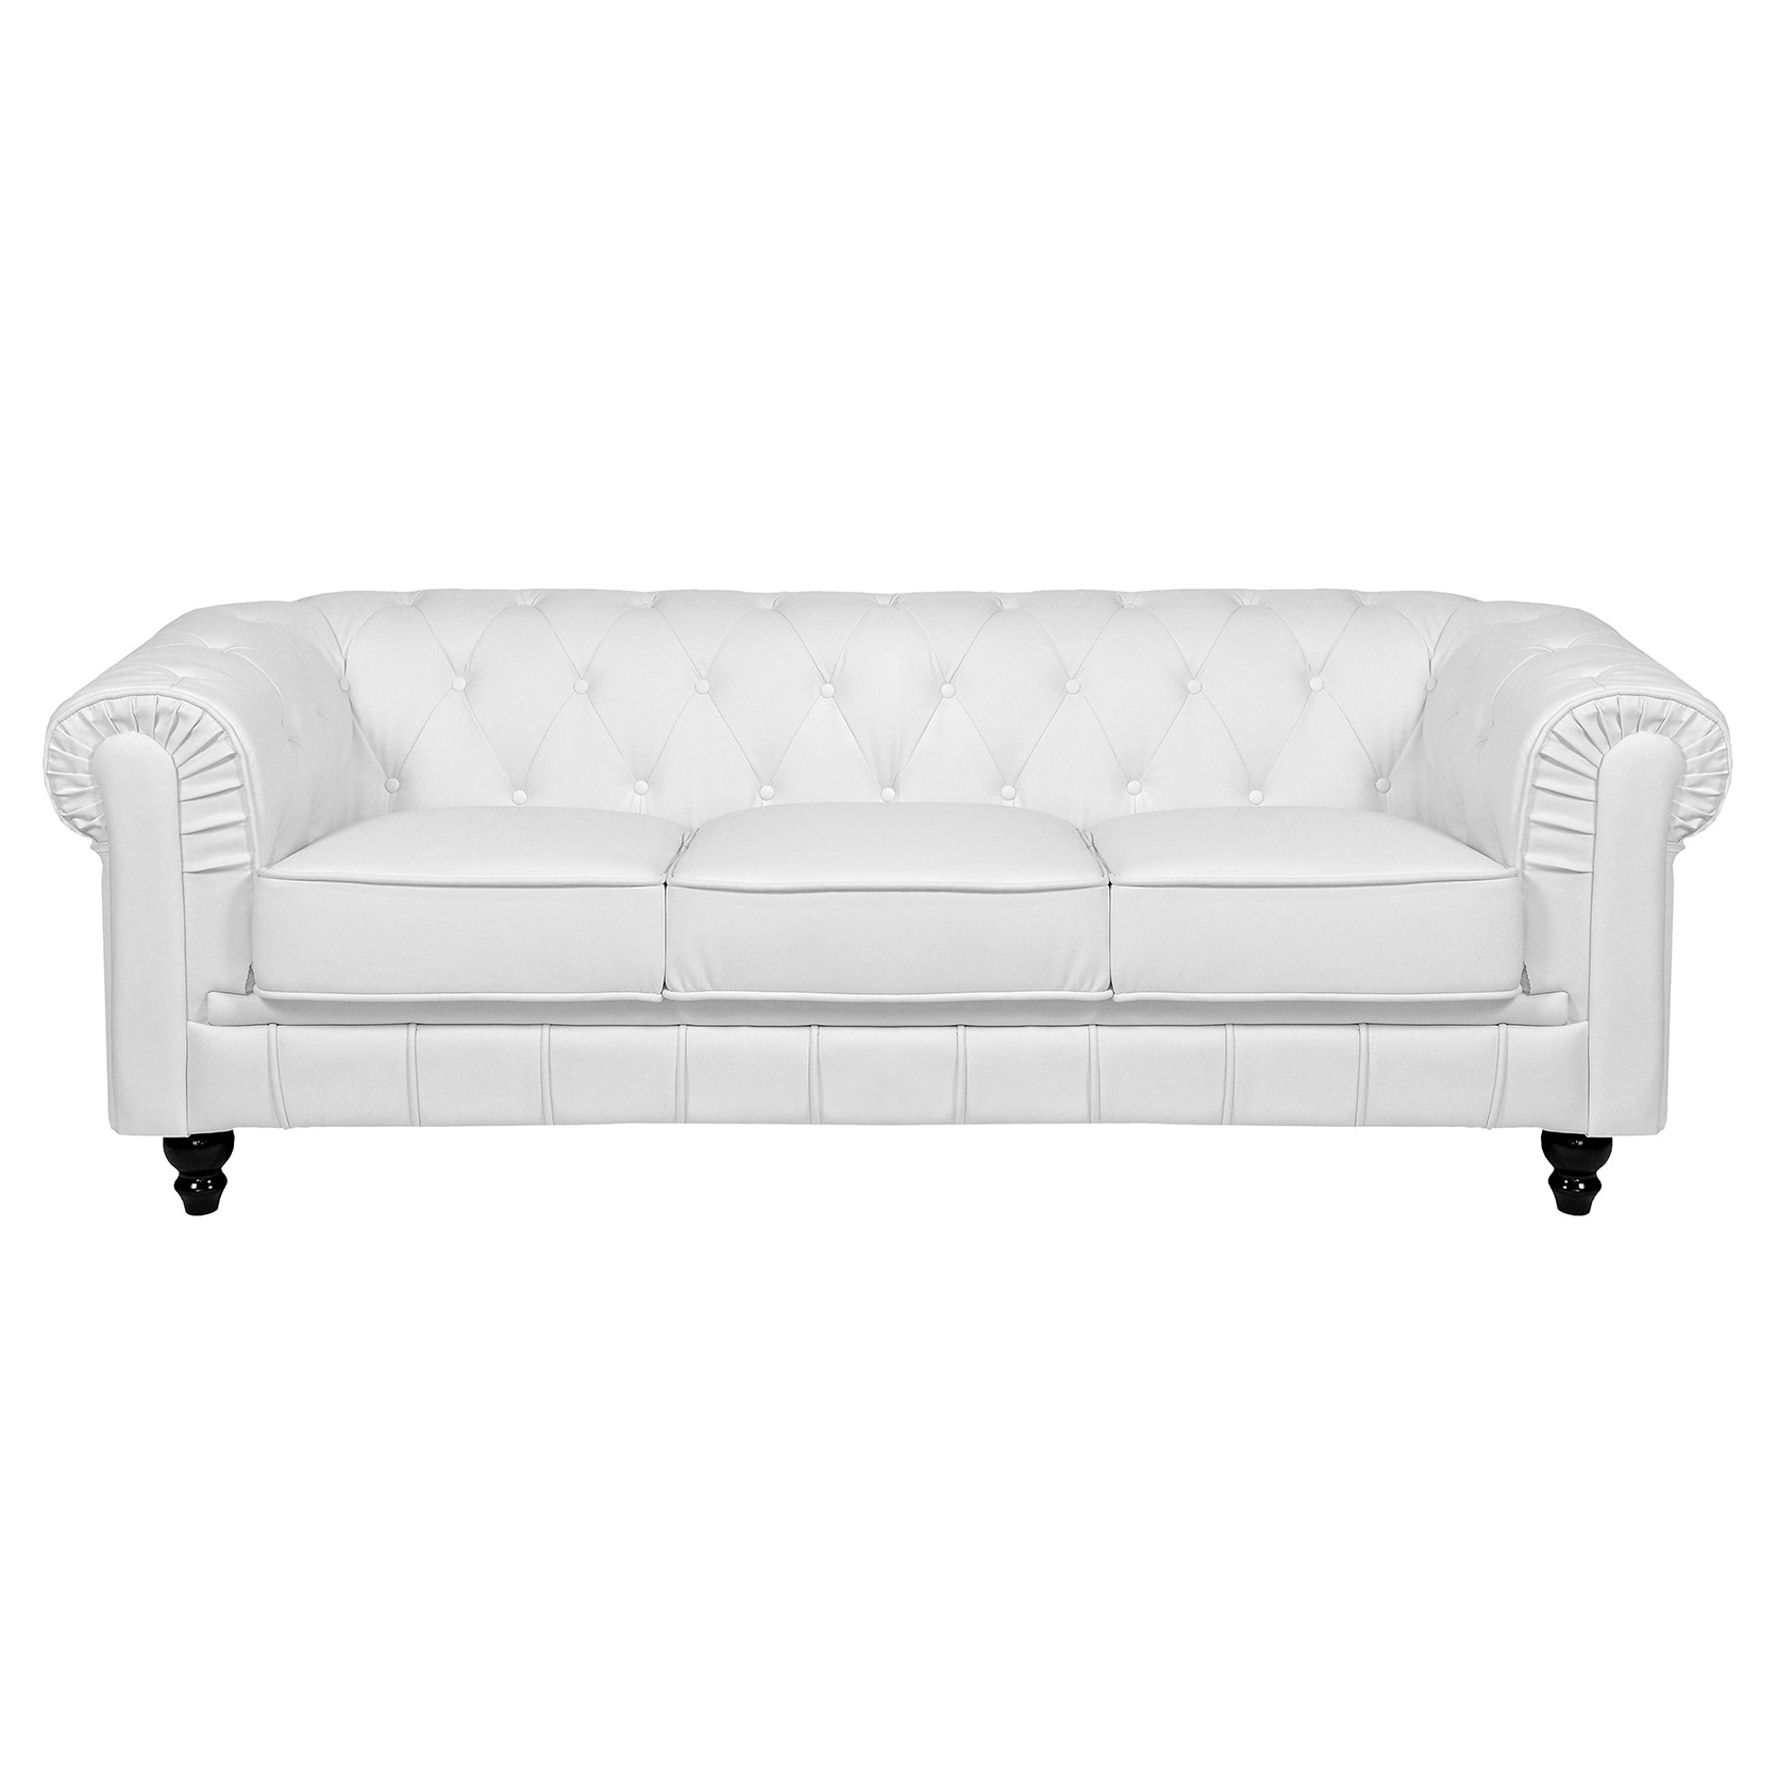 Deco in paris canape 3 places blanc chesterfield can chester 3p pu blanc - Canape chesterfield blanc ...